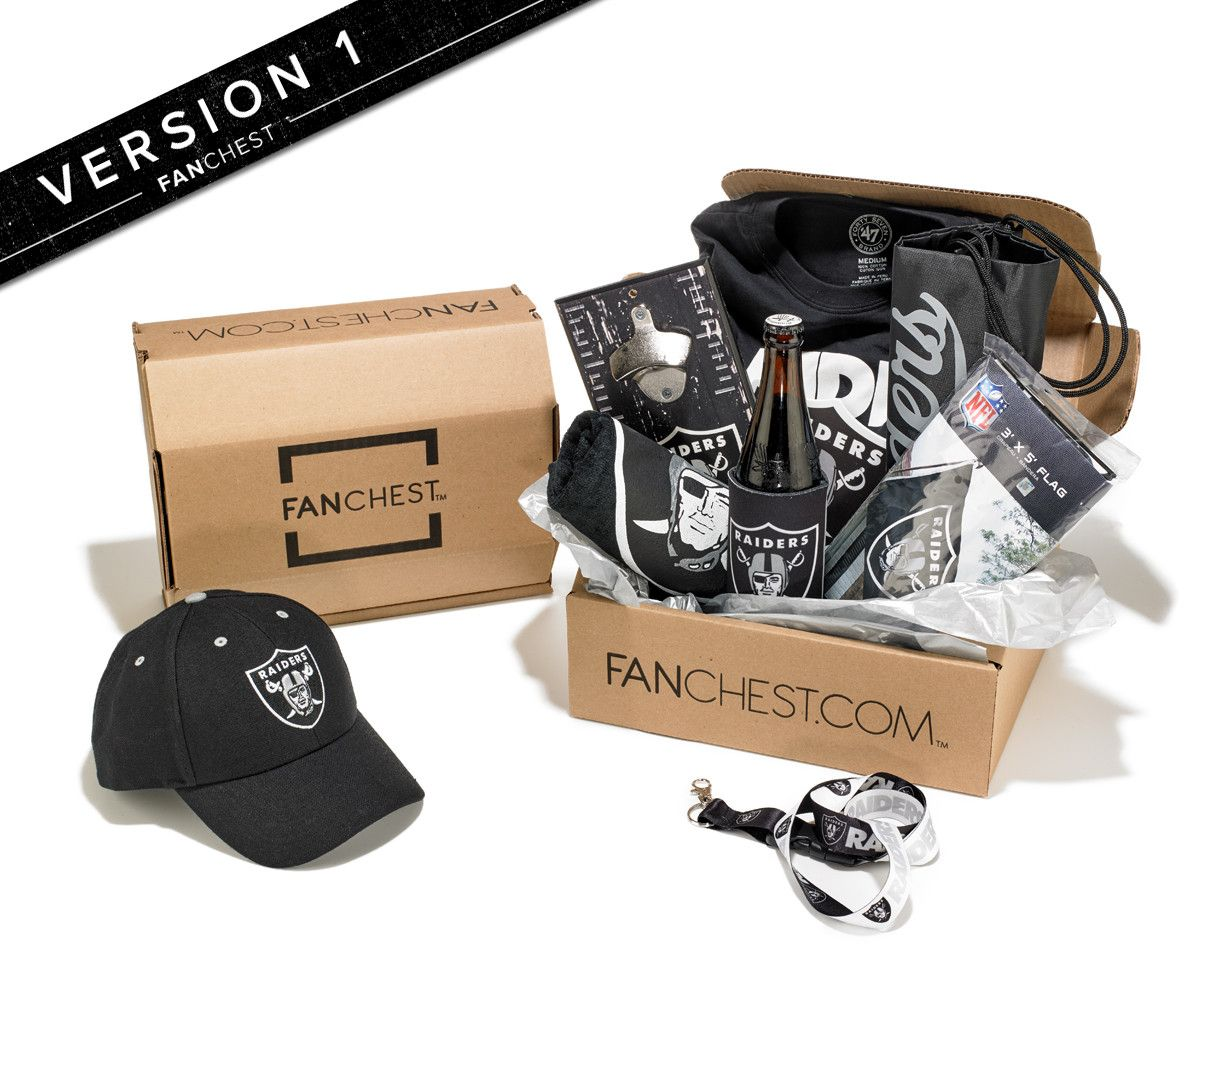 Oakland Raiders FANCHEST 3 - Mens - S | Oakland Raiders Gift Ideas ...